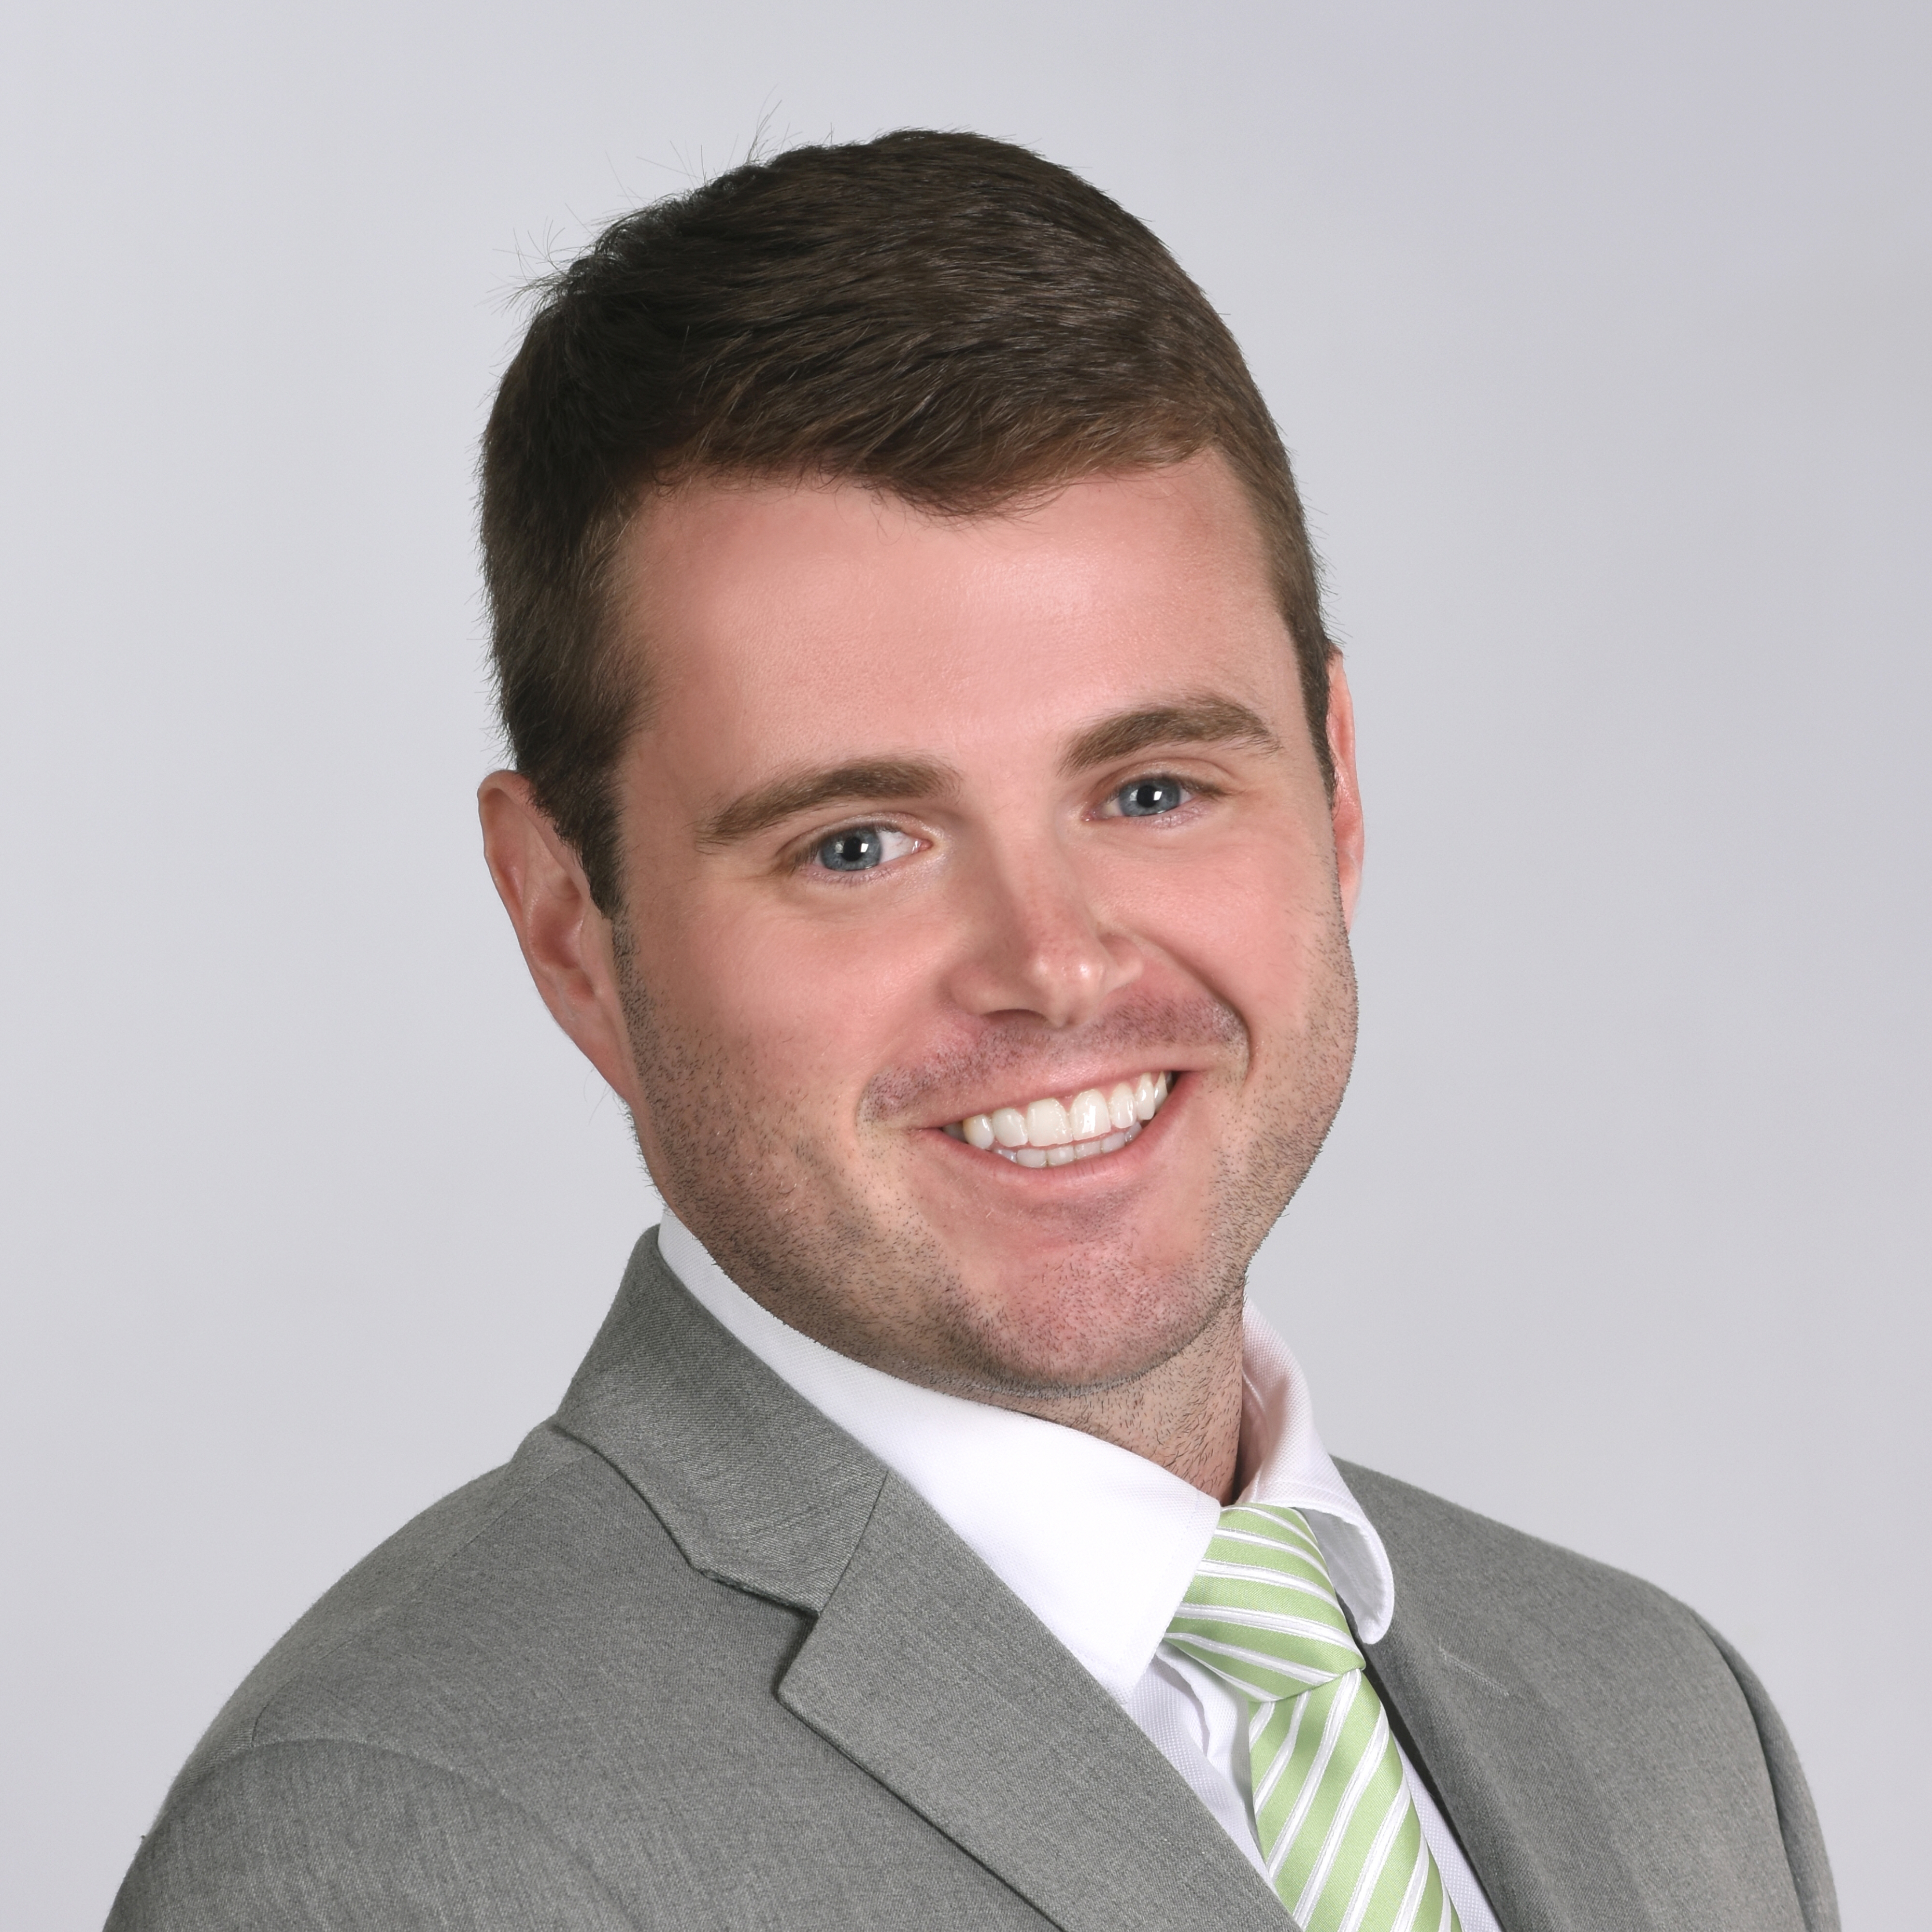 Real Estate Agent Chad White